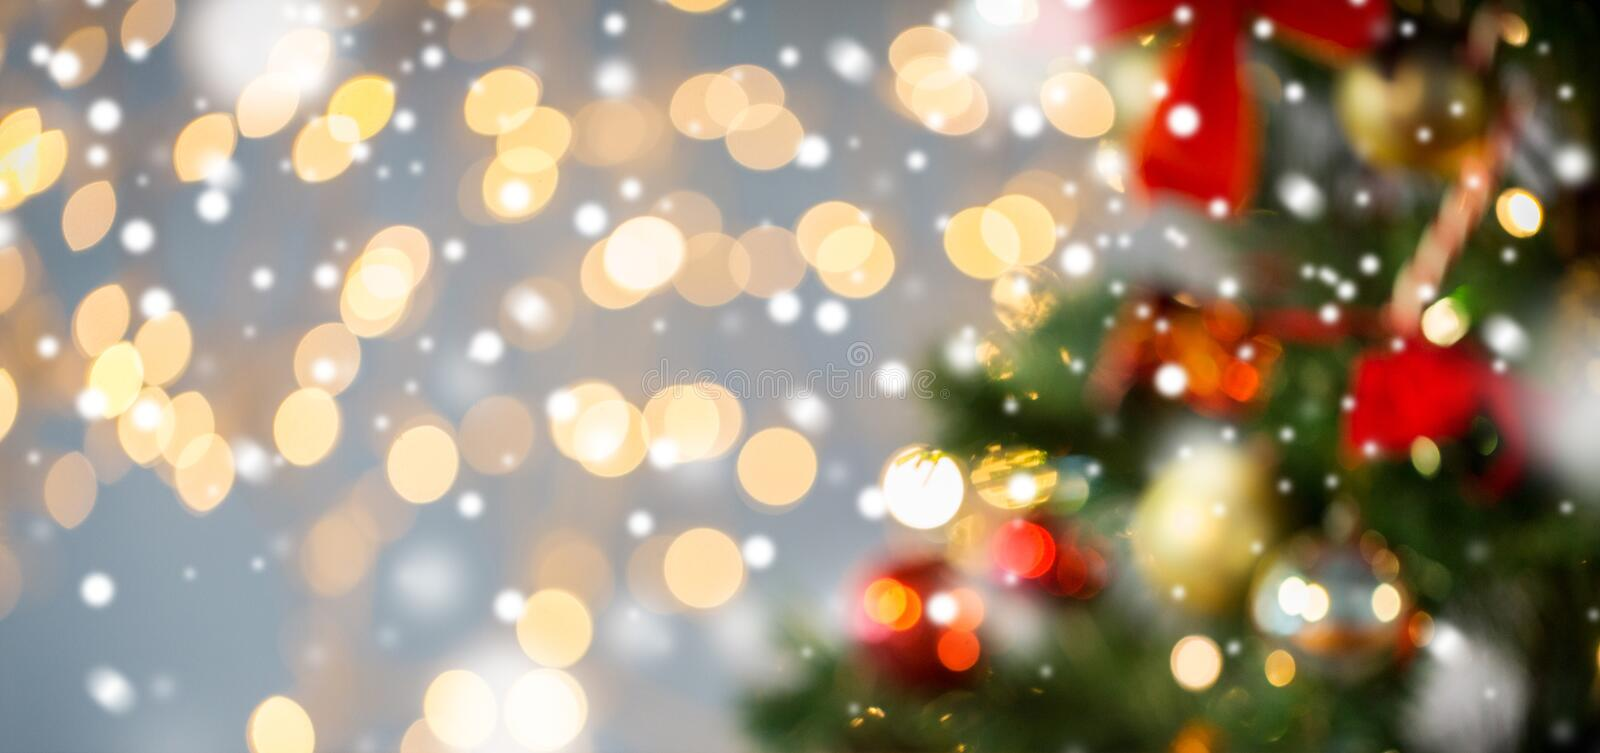 Blurred christmas tree decorated with balls royalty free stock photos